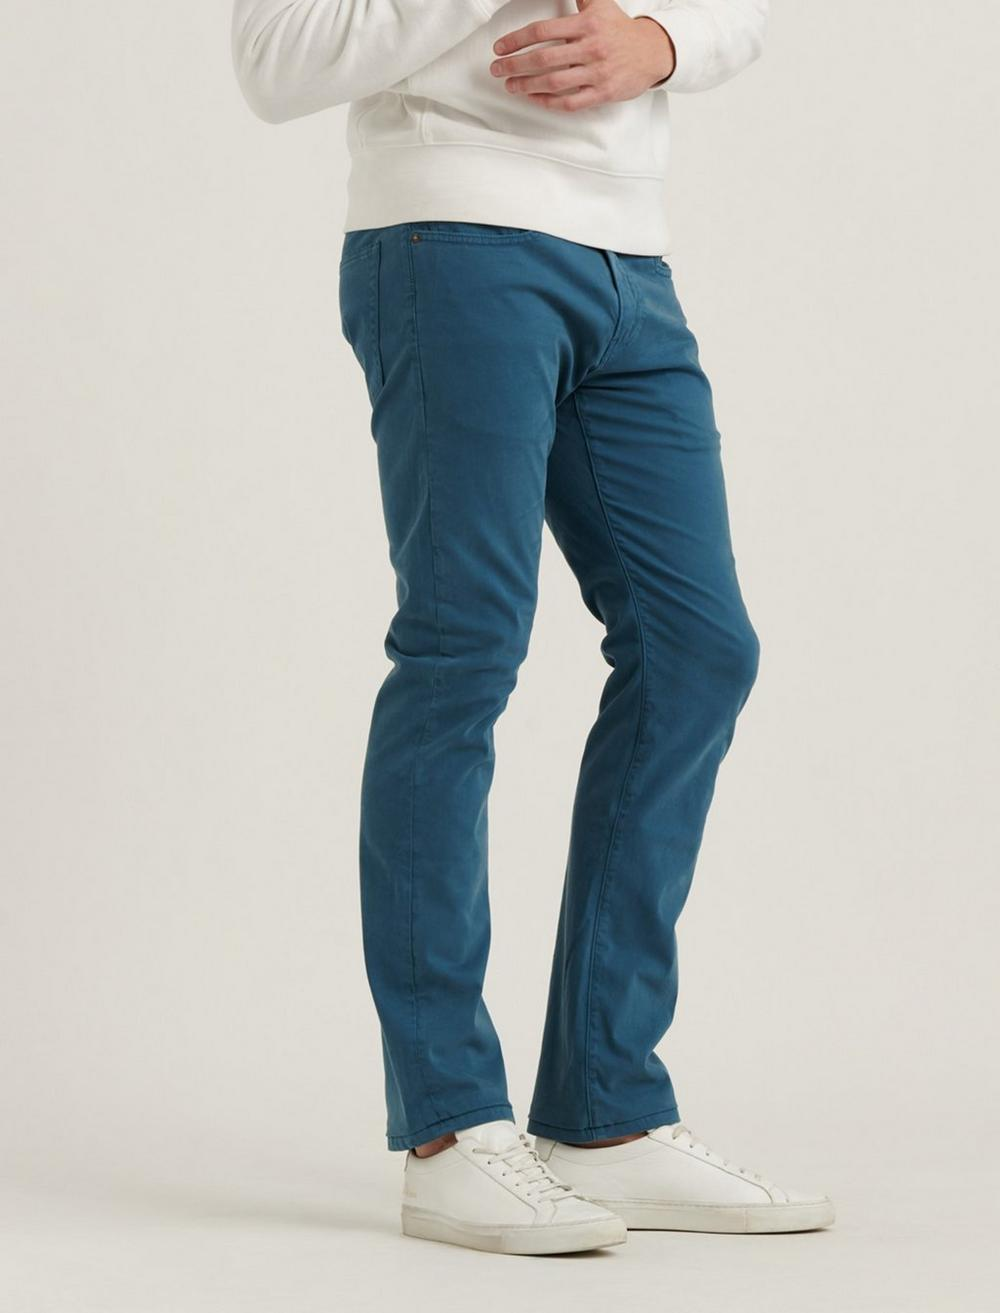 223 STRAIGHT SATEEN STRETCH JEAN, image 3